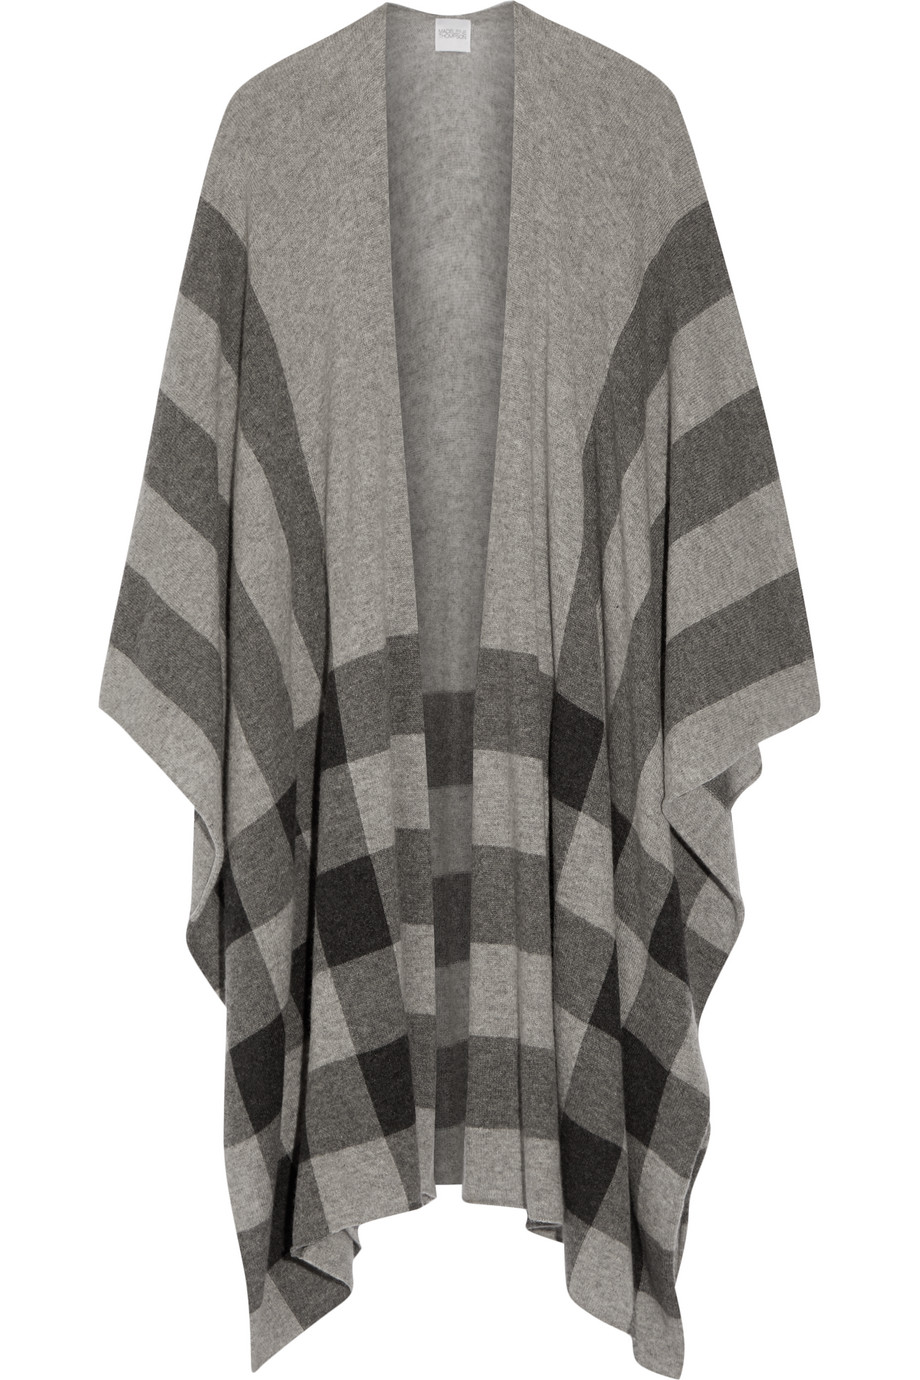 Shipton Checked Cashmere Wrap, Madeleine Thompson, Light Gray, Women's